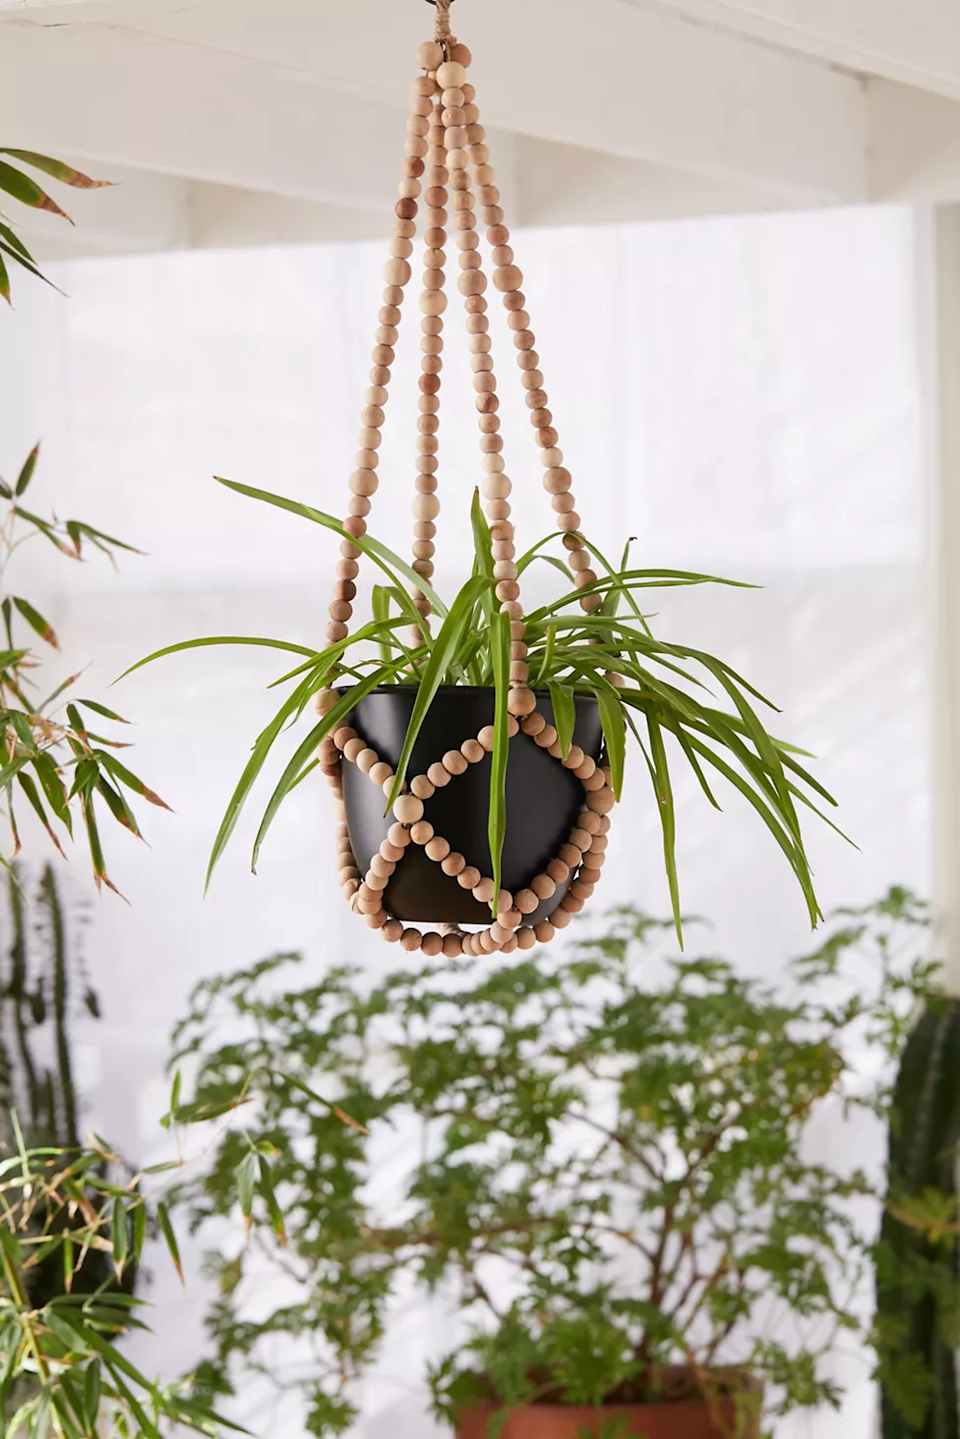 """<h2>Urban Outfitters Beaded Hanging Planter</h2><br>Upgrade your living space with a sweet hanging pot crafted from wooden beads that will easily complement a variety of interiors.<br><br><strong>Urban Outfitters</strong> Beaded Hanging Planter, $, available at <a href=""""https://go.skimresources.com/?id=30283X879131&url=https%3A%2F%2Fwww.urbanoutfitters.com%2Fshop%2Fbeaded-hanging-planter2"""" rel=""""nofollow noopener"""" target=""""_blank"""" data-ylk=""""slk:Urban Outfitters"""" class=""""link rapid-noclick-resp"""">Urban Outfitters</a>"""